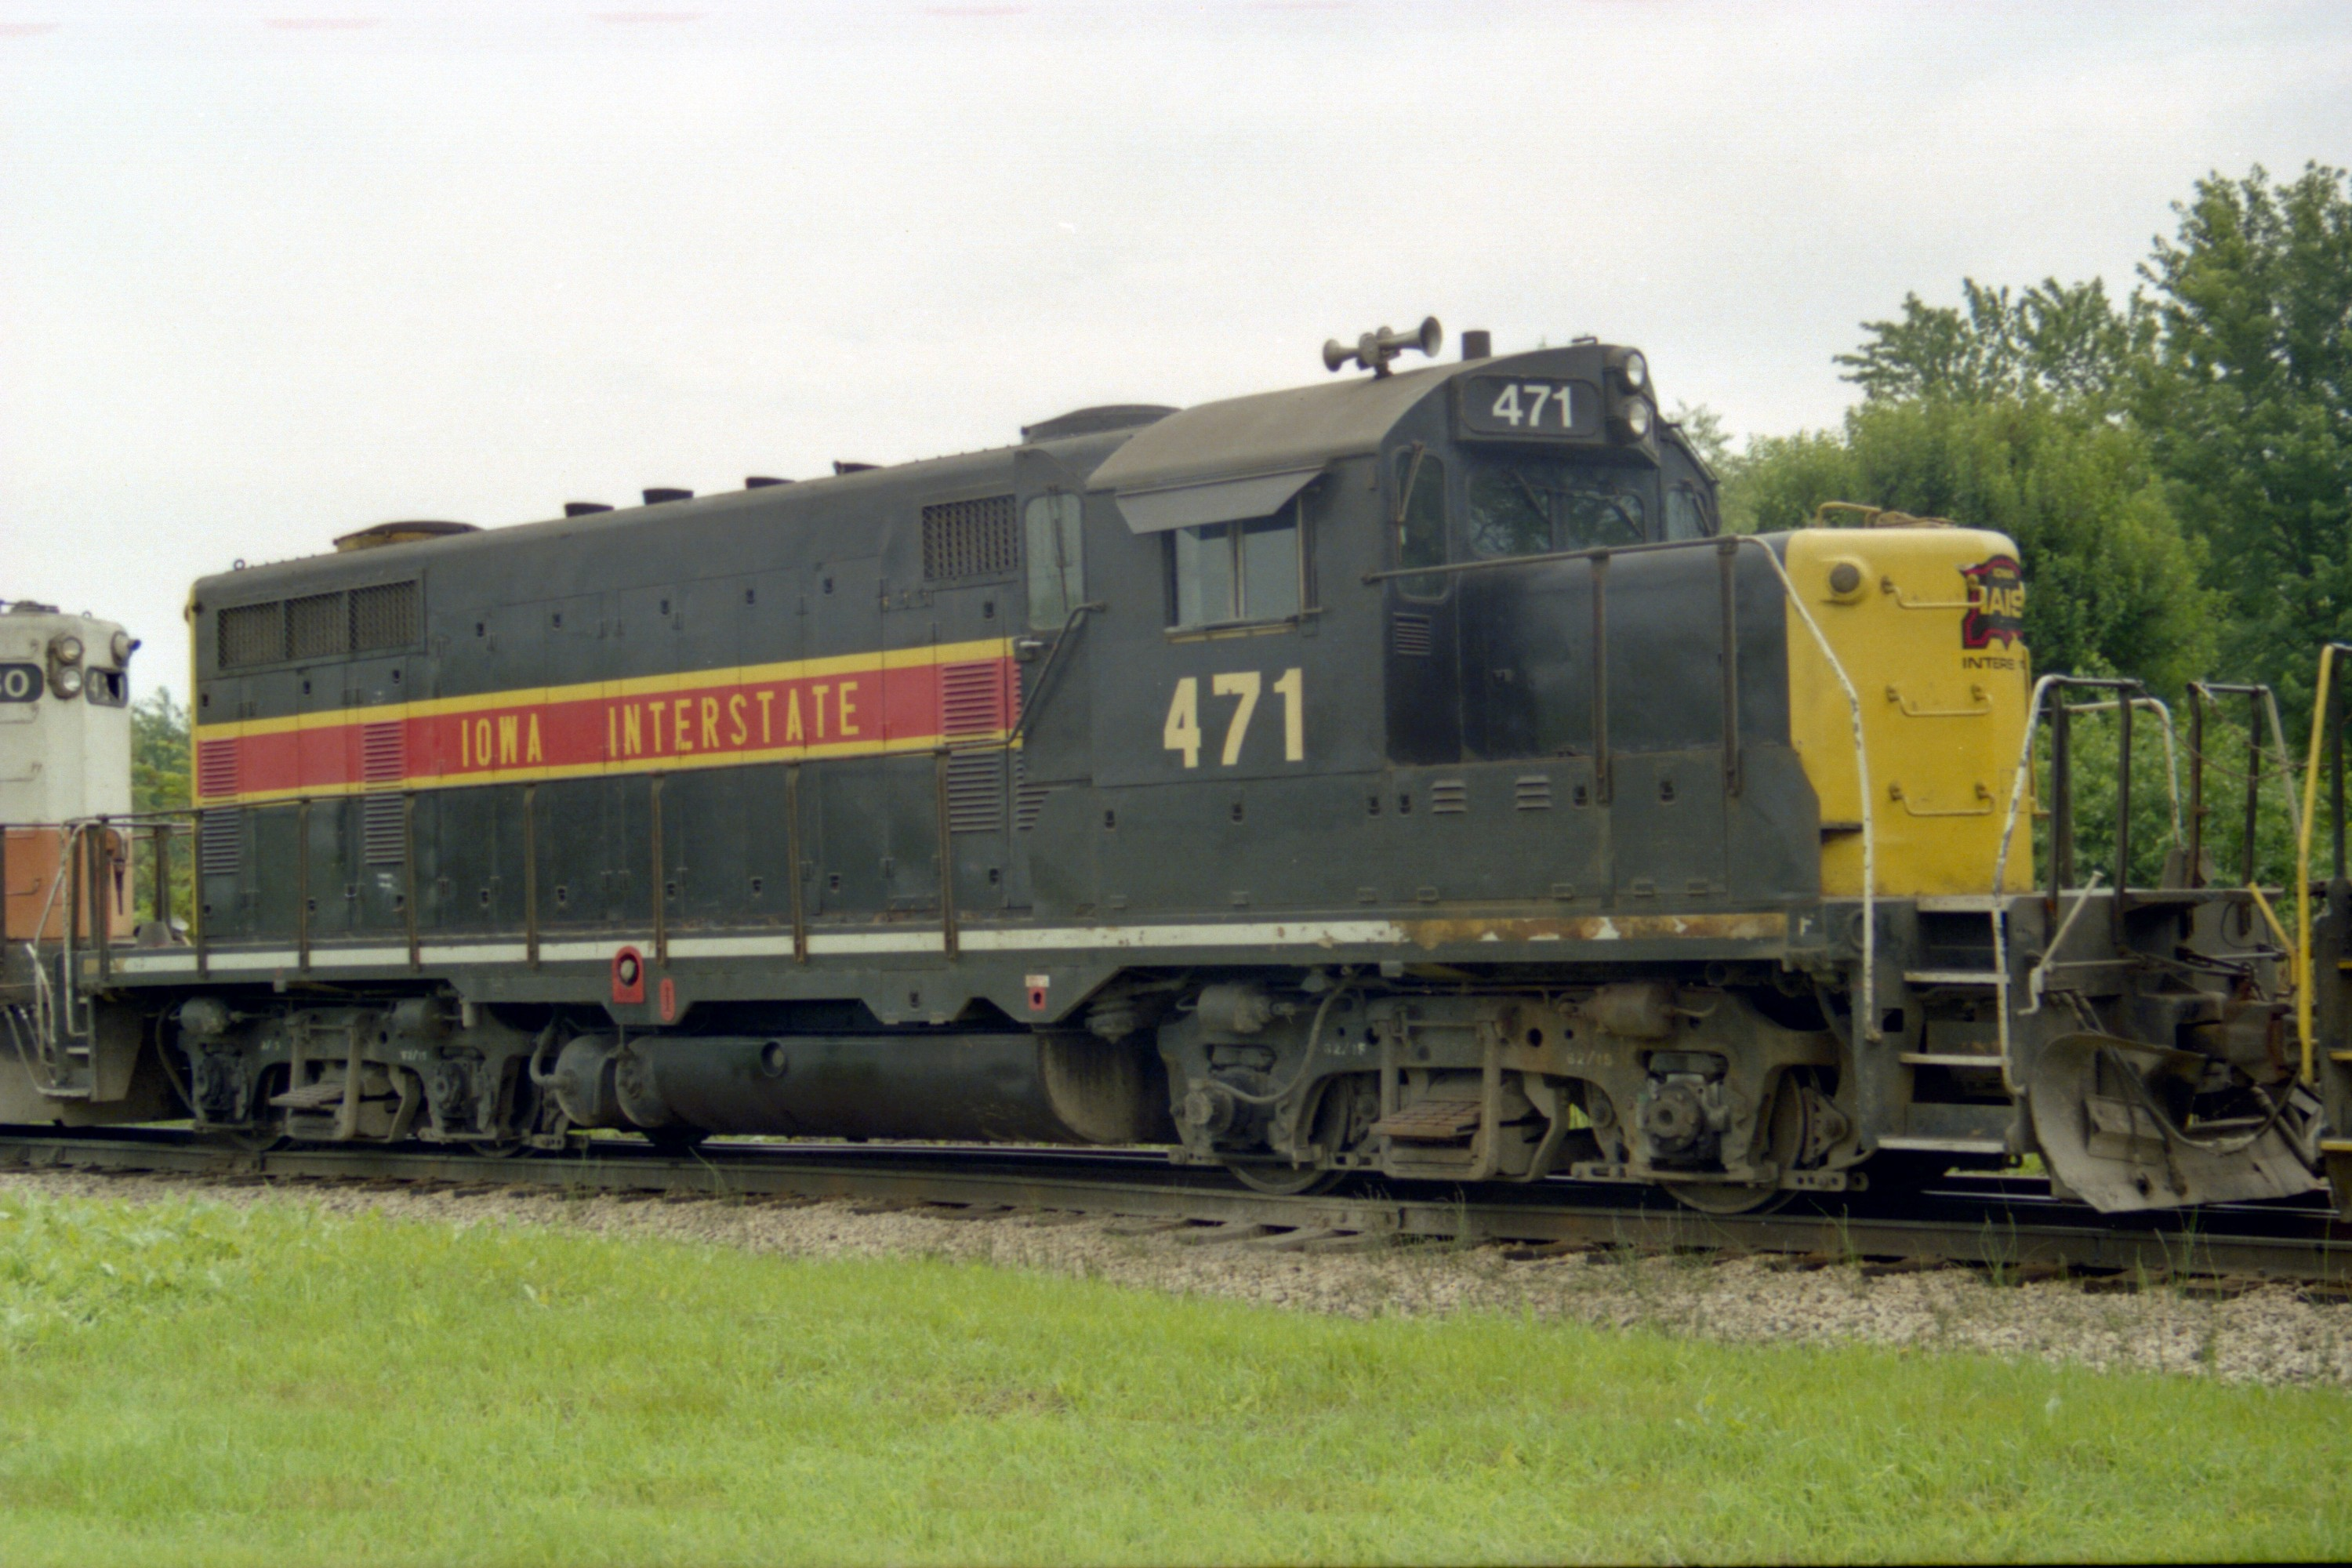 IAIS 471 in Altoona, IA, on 1 Jul 1993